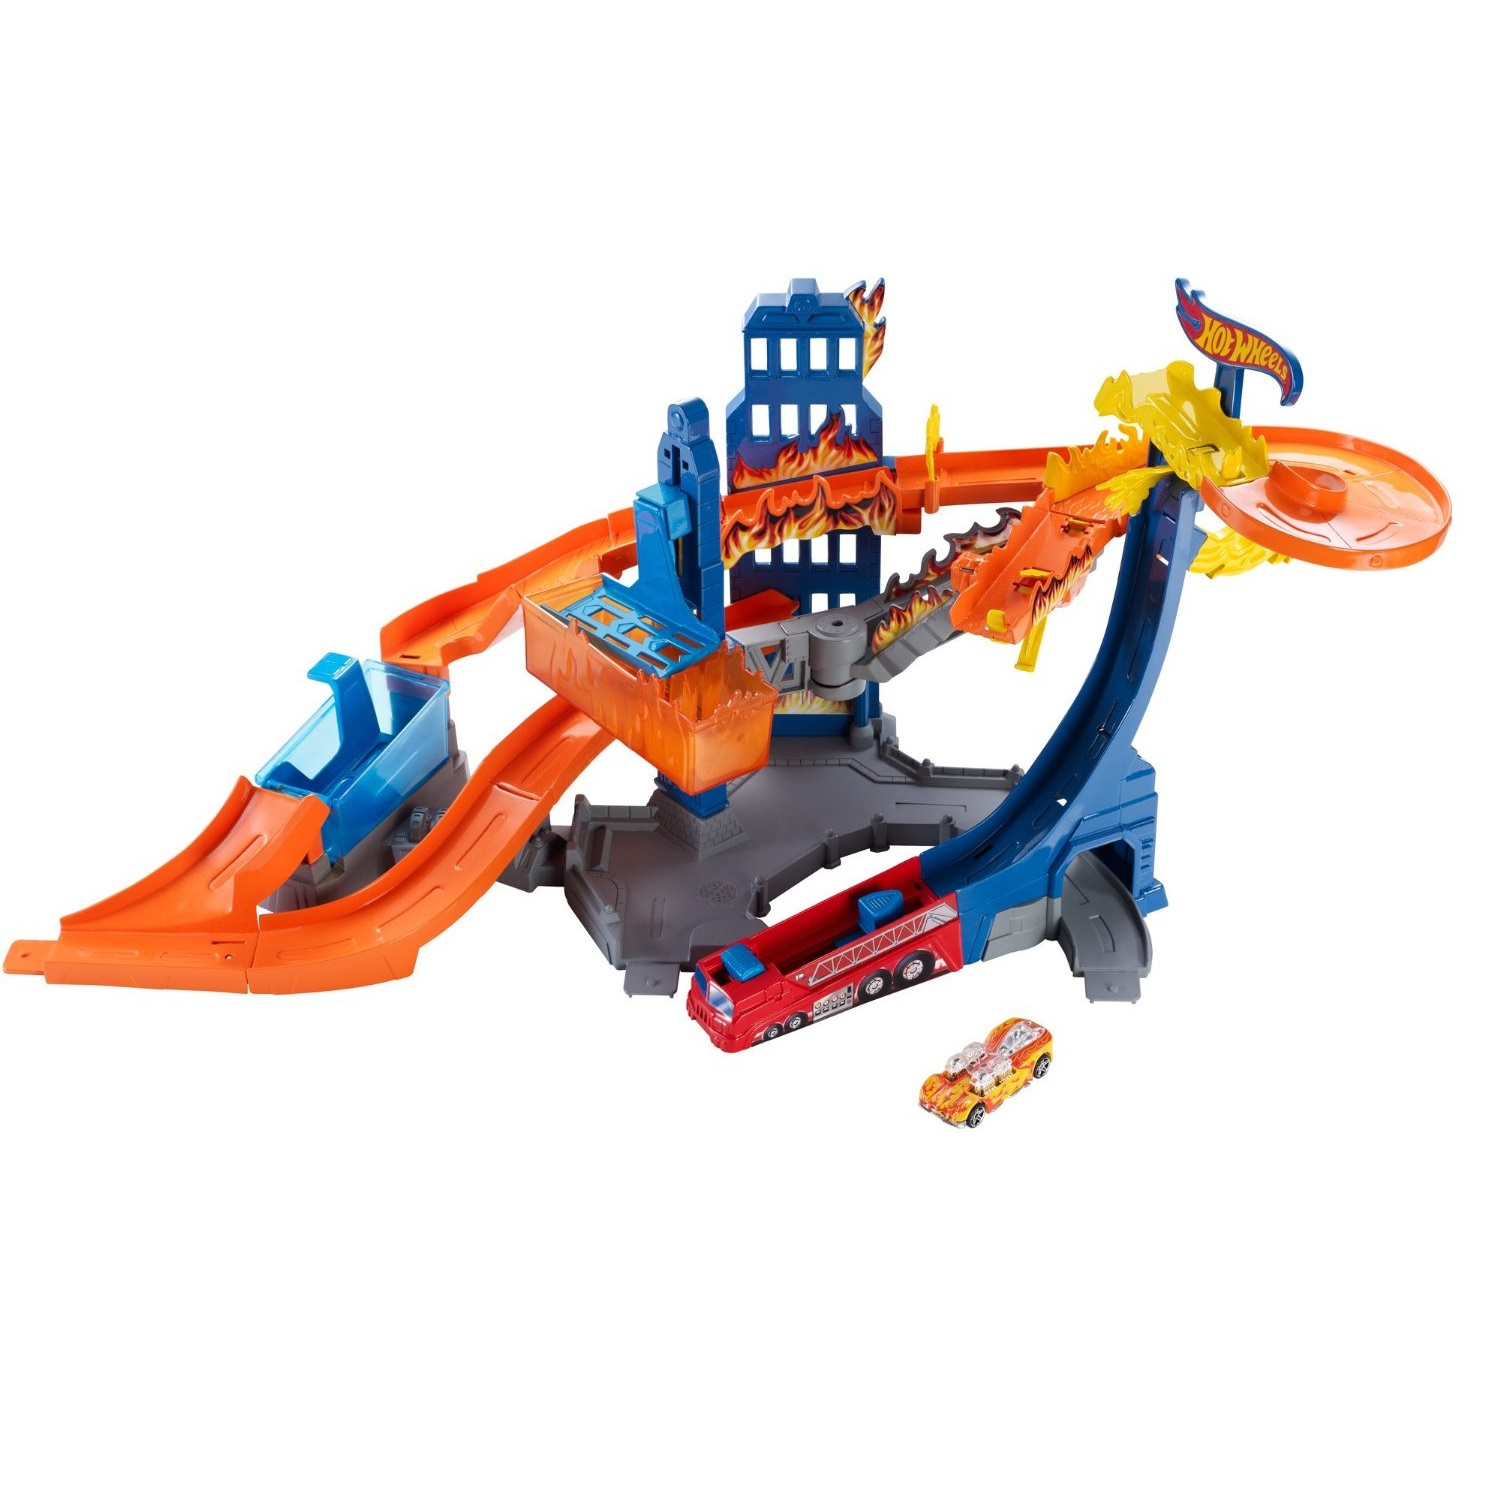 Bộ đồ chơi Hot Wheels Color Shifters Flame Fighter Playset